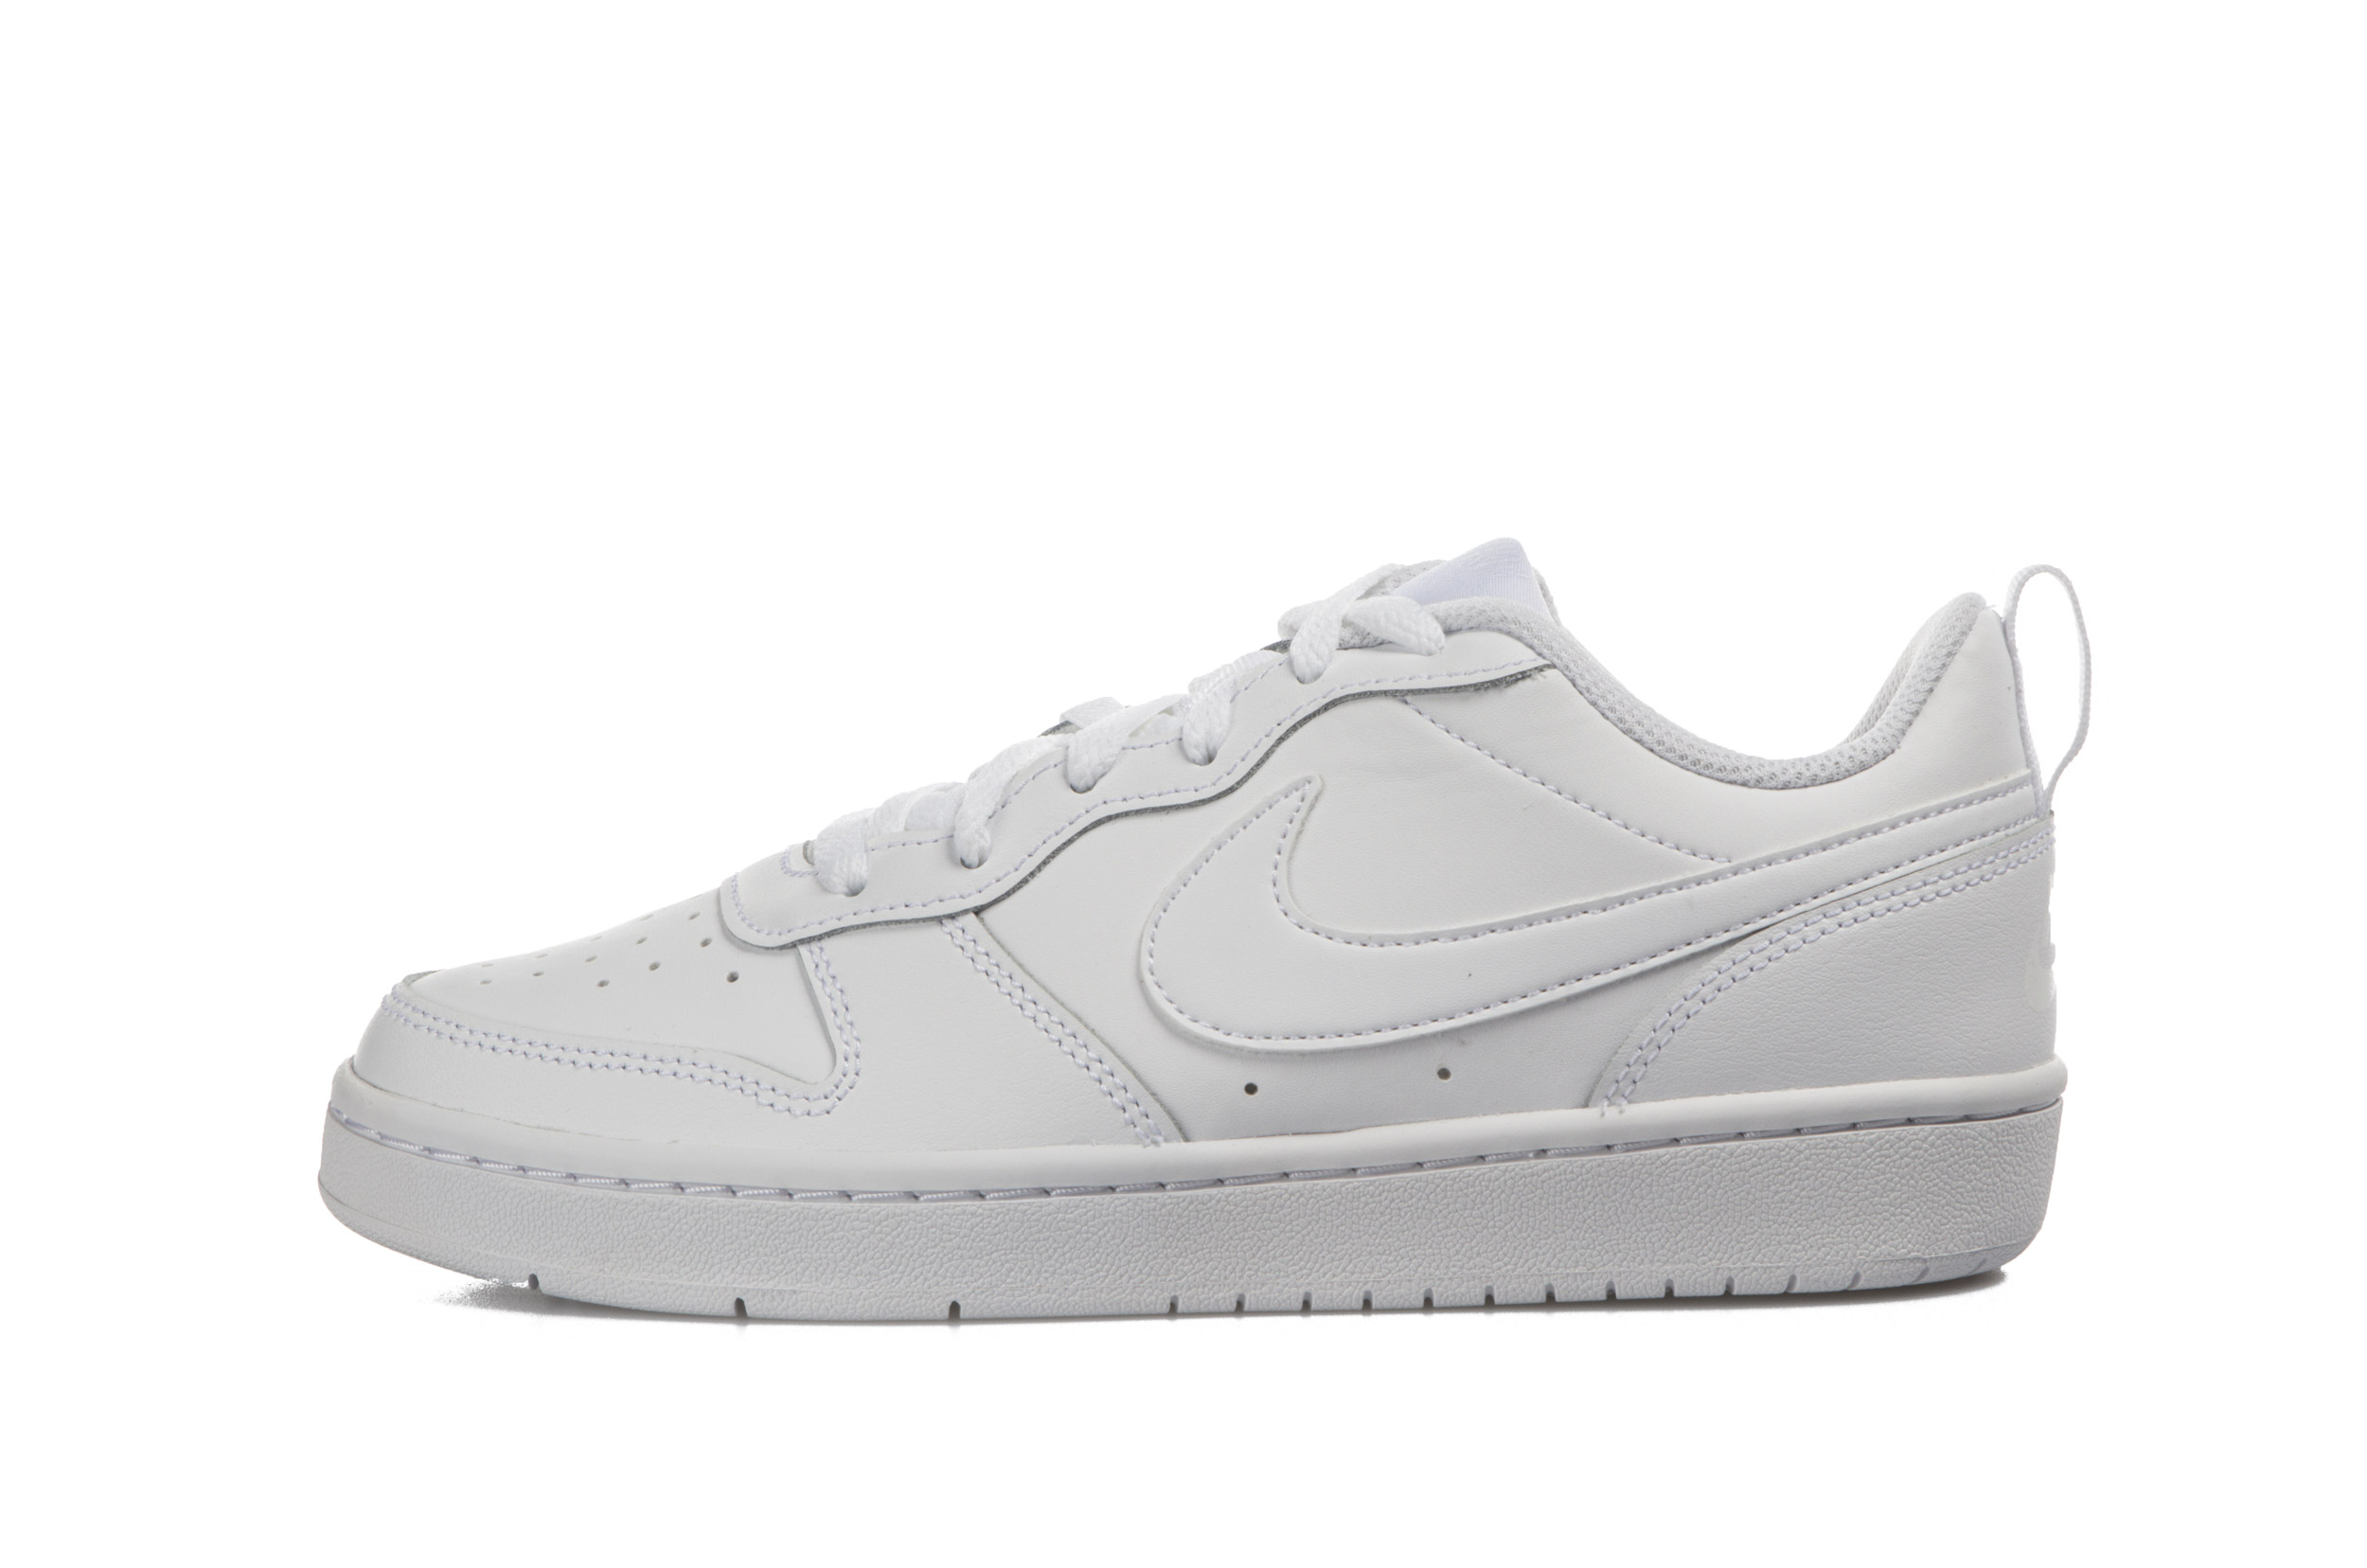 NIKE COURT BOROUGH LOW 2 BQ5448-100 Λευκό